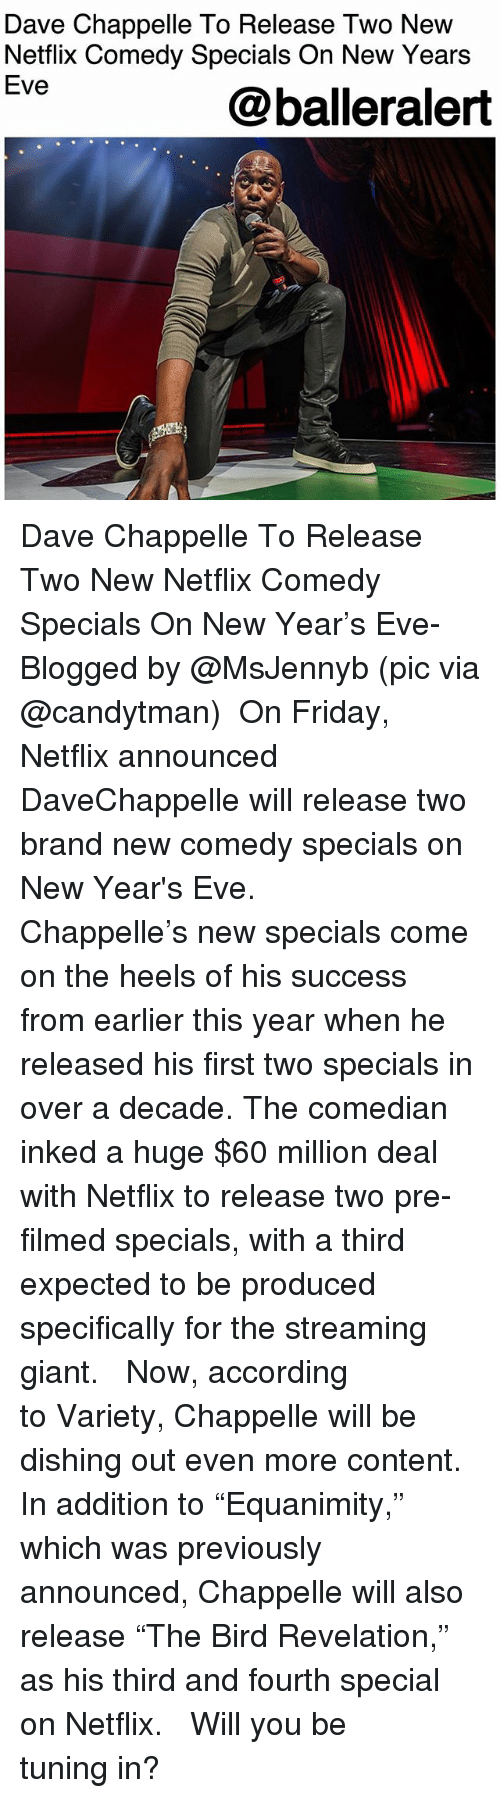 """Friday, Memes, and Netflix: Dave Chappelle To Release Two New  Netflix Comedy Specials On New Years  Eve  @balleralert Dave Chappelle To Release Two New Netflix Comedy Specials On New Year's Eve- Blogged by @MsJennyb (pic via @candytman) ⠀⠀⠀⠀⠀⠀⠀ On Friday, Netflix announced DaveChappelle will release two brand new comedy specials on New Year's Eve. ⠀⠀⠀⠀⠀⠀⠀ ⠀⠀⠀⠀⠀⠀⠀ Chappelle's new specials come on the heels of his success from earlier this year when he released his first two specials in over a decade. The comedian inked a huge $60 million deal with Netflix to release two pre-filmed specials, with a third expected to be produced specifically for the streaming giant. ⠀⠀⠀⠀⠀⠀⠀ ⠀⠀⠀⠀⠀⠀⠀ Now, according to Variety, Chappelle will be dishing out even more content. In addition to """"Equanimity,"""" which was previously announced, Chappelle will also release """"The Bird Revelation,"""" as his third and fourth special on Netflix. ⠀⠀⠀⠀⠀⠀⠀ ⠀⠀⠀⠀⠀⠀⠀ Will you be tuning in?"""